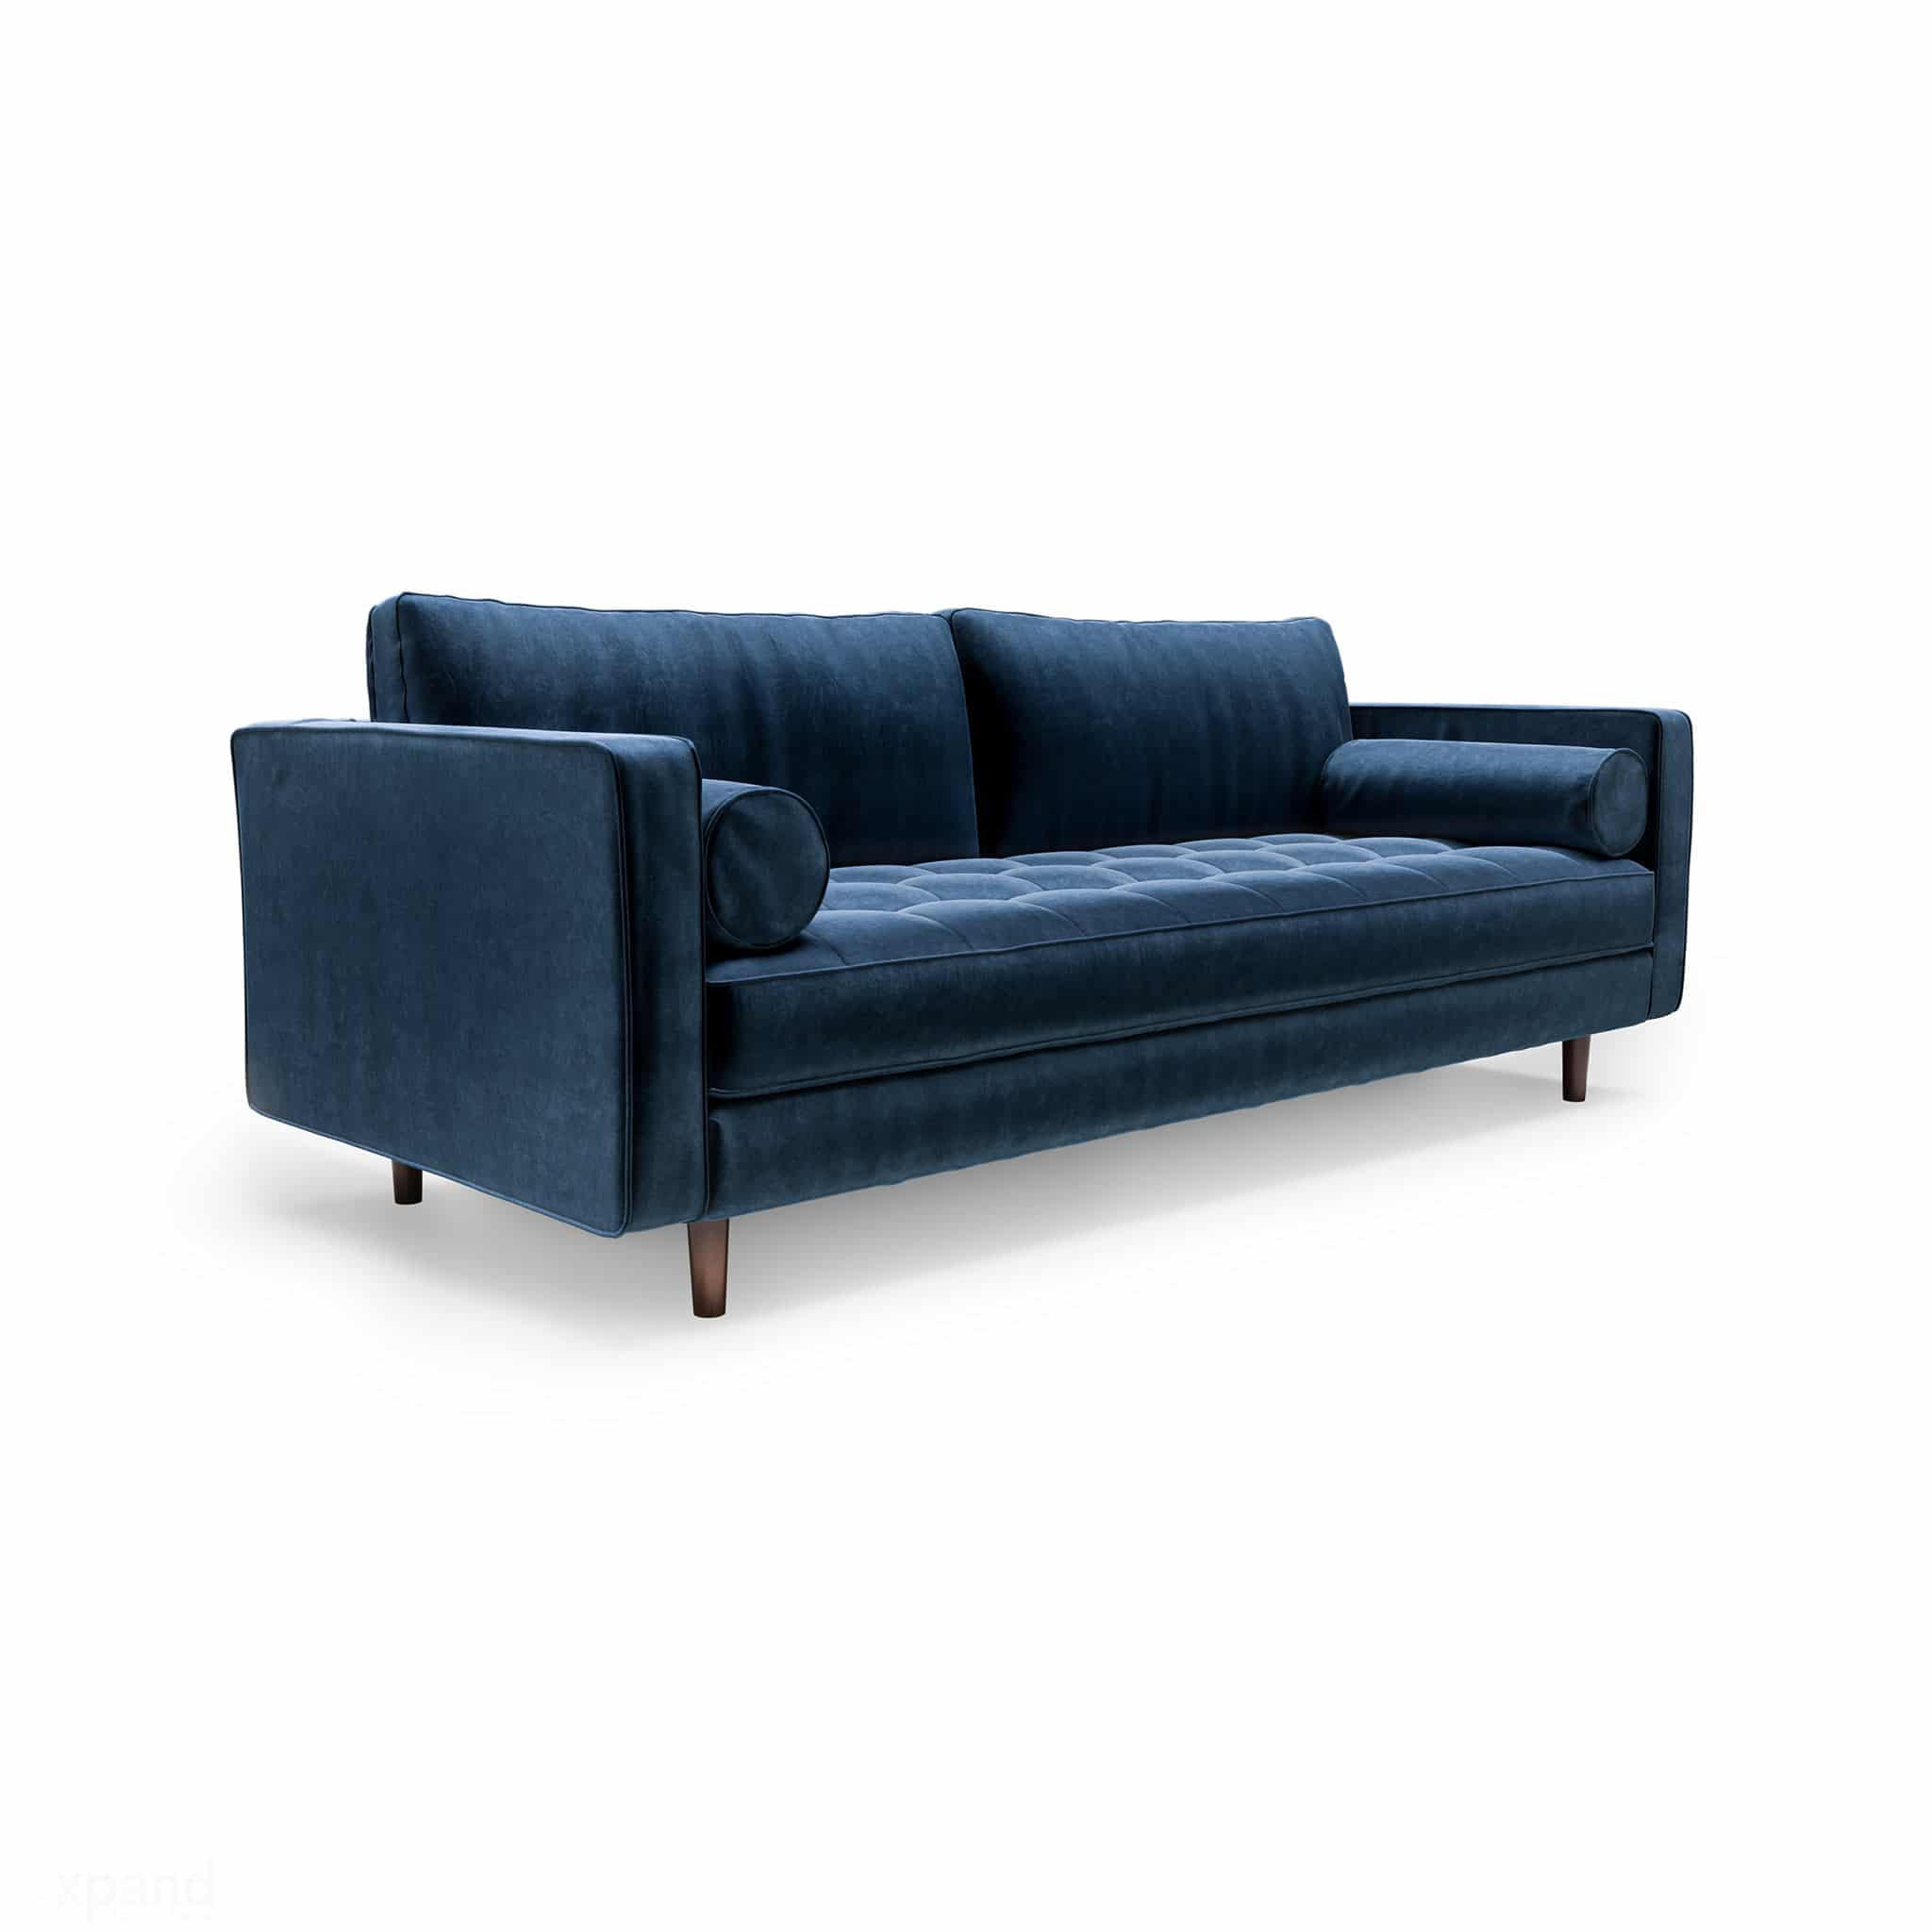 Modern Couch Scandormi Modern Sofa Navy Blue Mid Century Tufted Couch